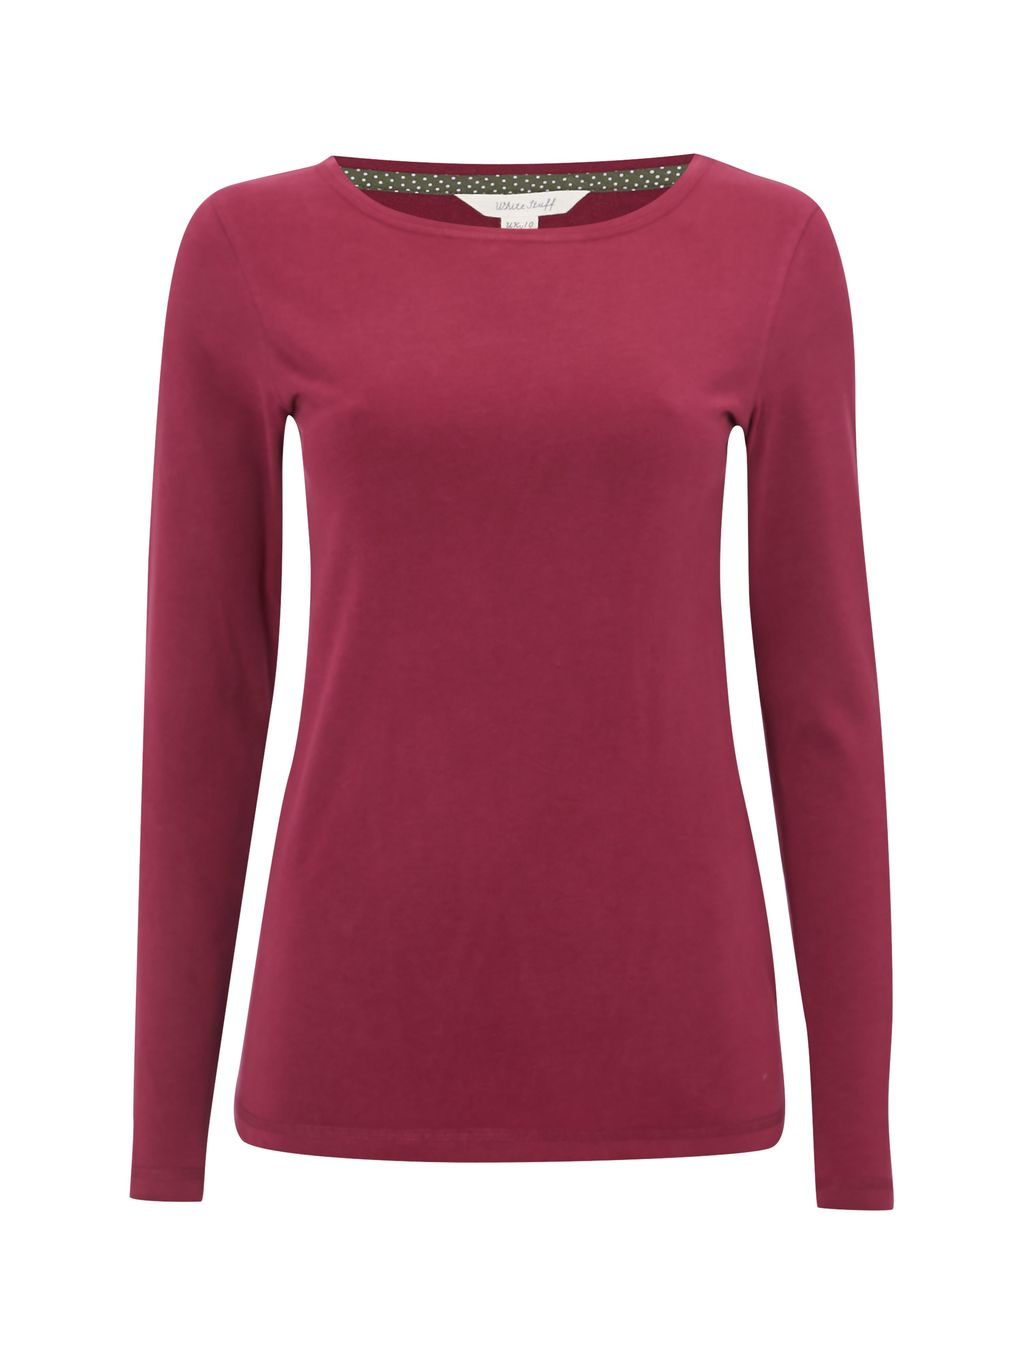 Florence Ls Jersey Tee, Purple - pattern: plain; style: t-shirt; predominant colour: magenta; occasions: casual; length: standard; fibres: cotton - stretch; fit: body skimming; neckline: crew; sleeve length: long sleeve; sleeve style: standard; texture group: jersey - clingy; pattern type: fabric; season: s/s 2016; wardrobe: highlight